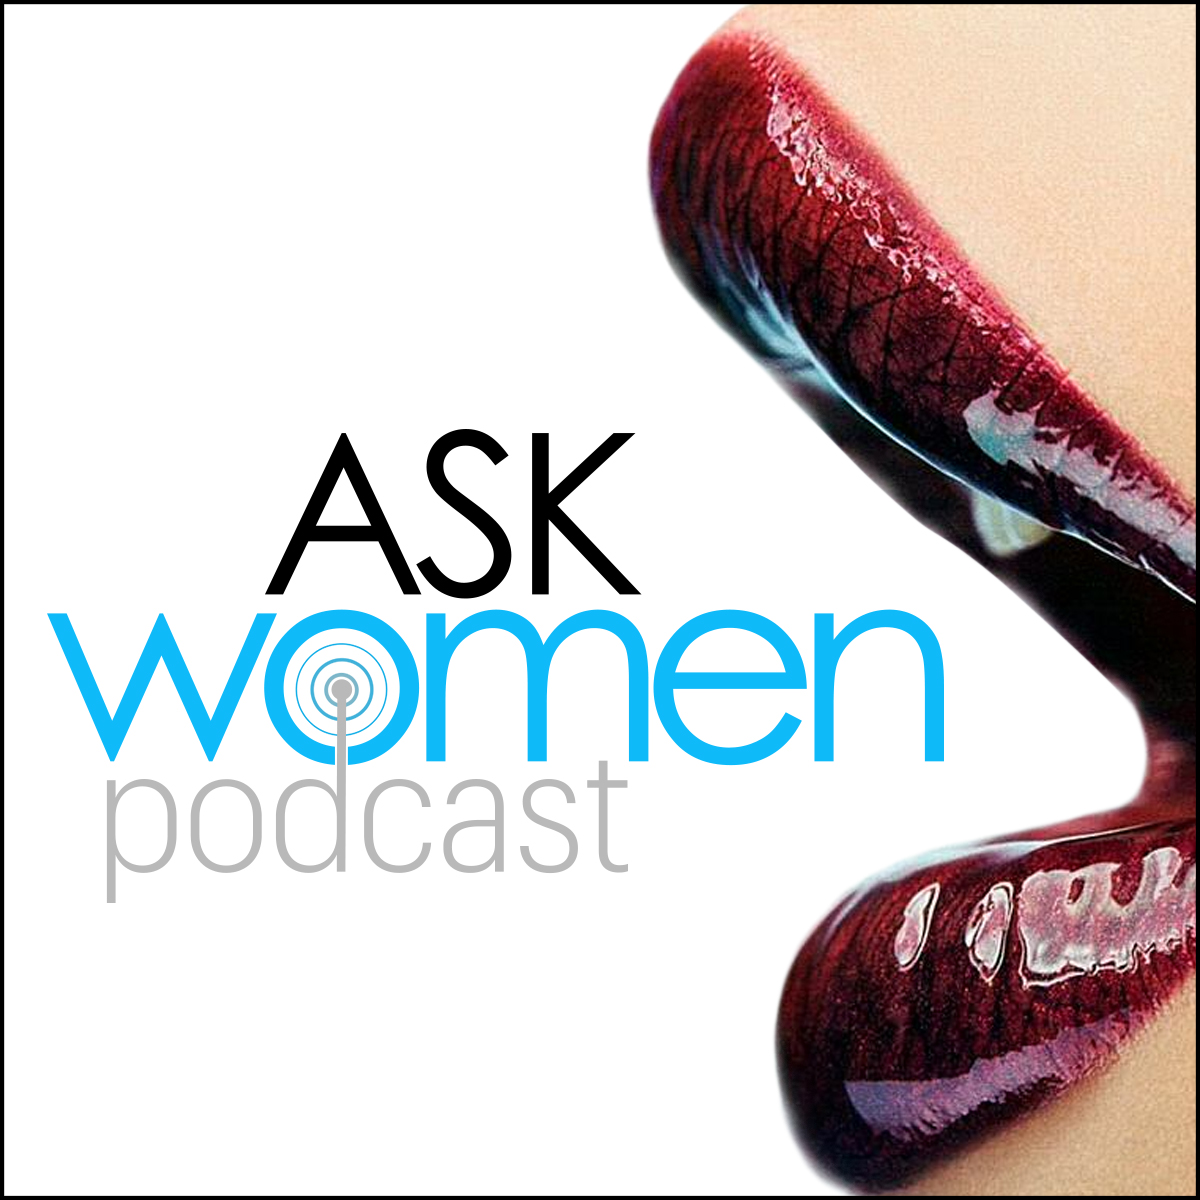 Ask Women Podcast: What Women Want show art